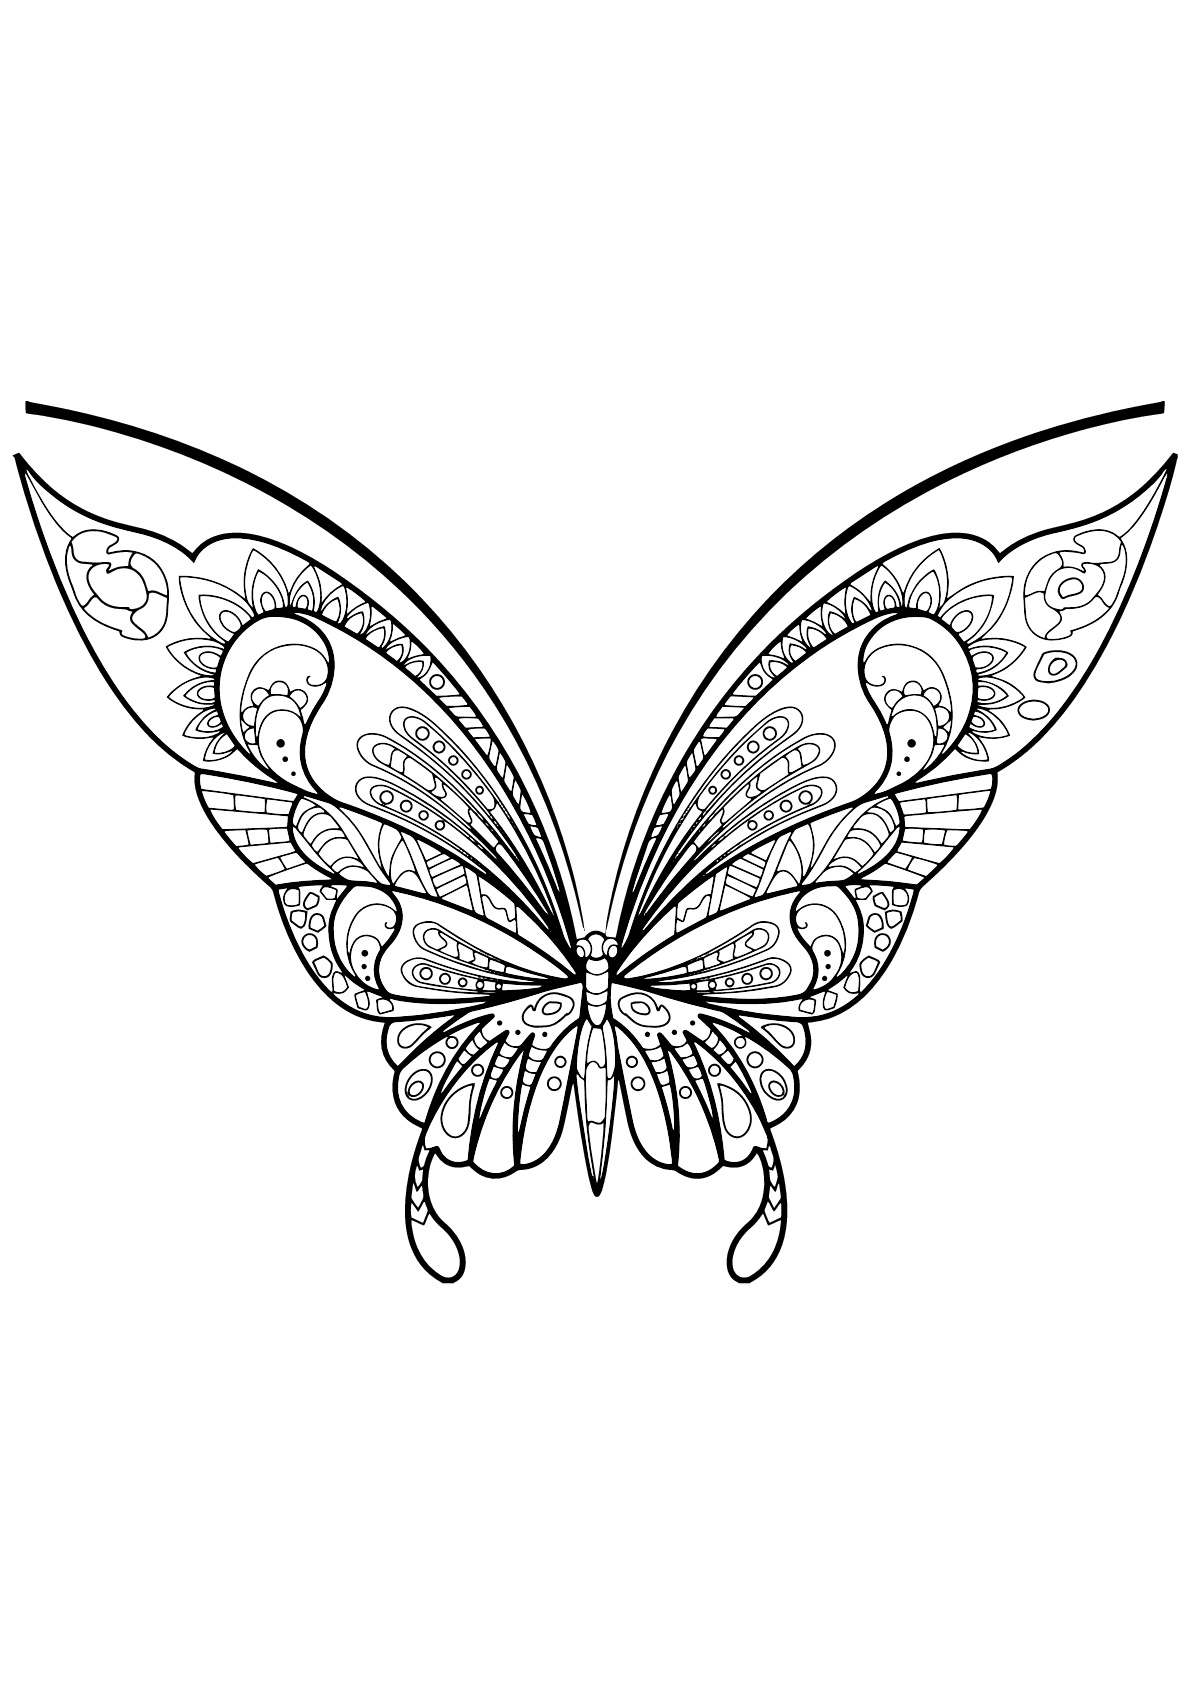 Simple Butterflies Coloring Page For Children